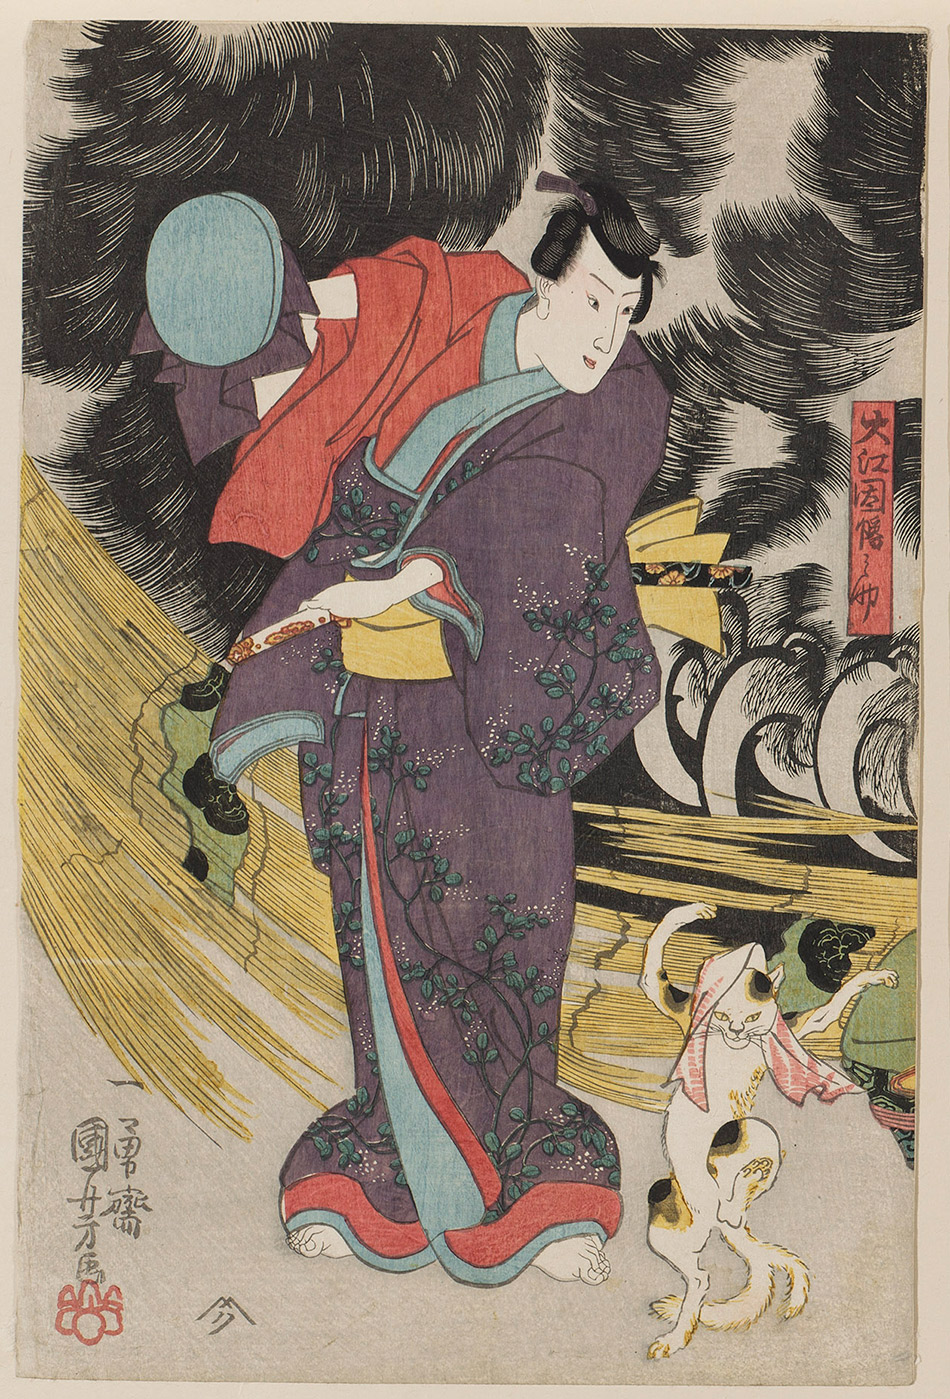 museum of fine arts boston_03-a_An-Imaginary-Scene-of-the-Origin-of-the-Cat-Stone-at-Okabe_Utagawa-Kuniyoshi_w